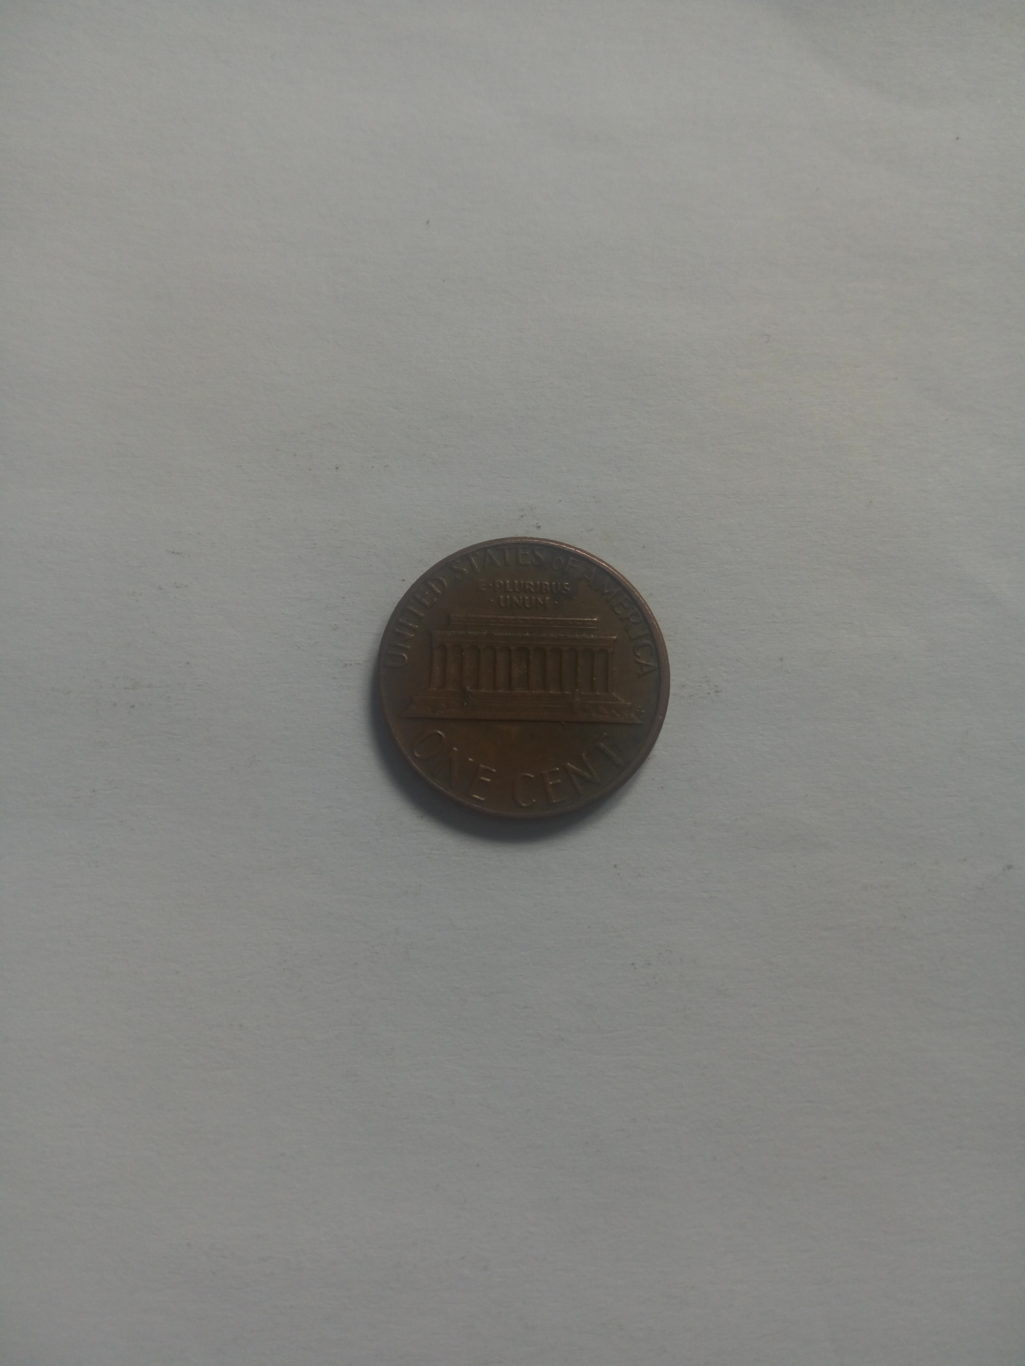 1983_ united states of america 1 cent